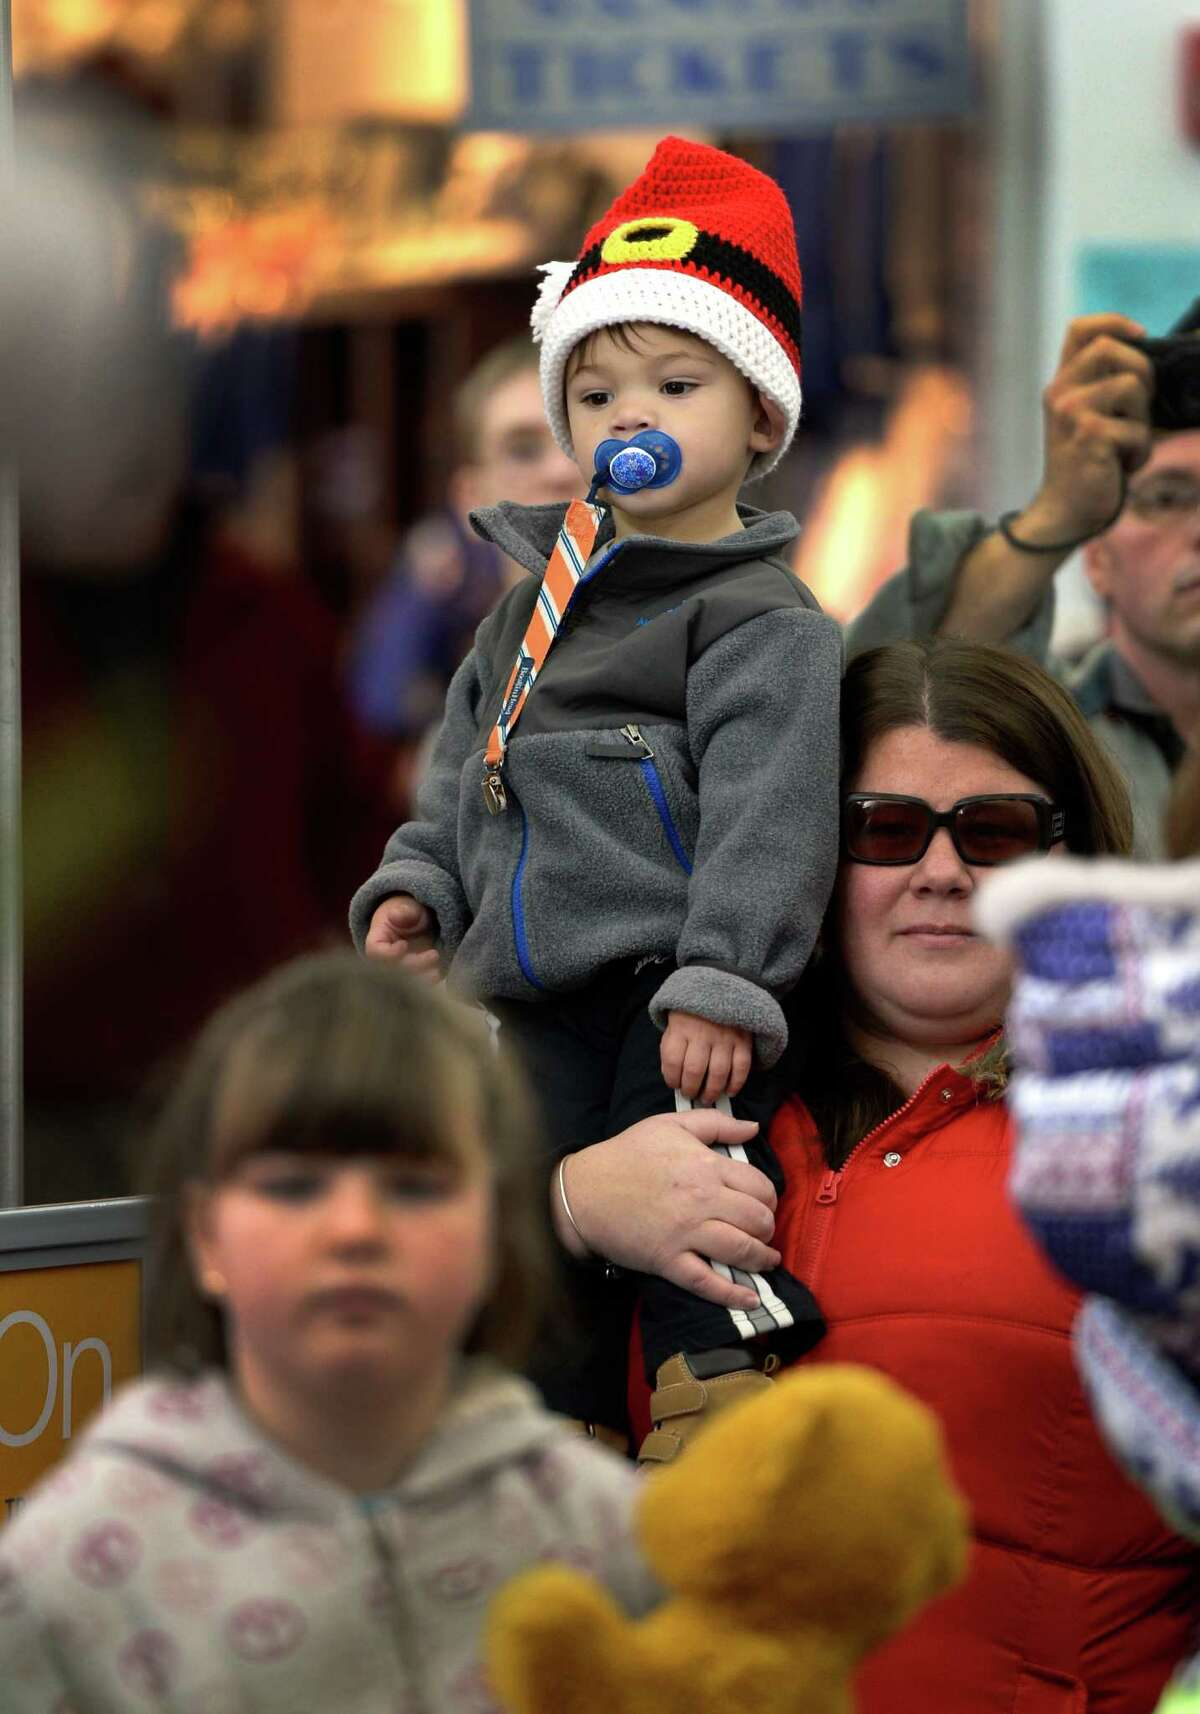 Two-year old Carter Fernandez is held by his mother, Jessica, as they watch the kick-off for this years Saratoga & North Creek Railroad Polar Express Monday afternoon, Nov. 11, 2013, at the Saratoga train station in Saratoga Springs, N.Y. (Skip Dickstein/Times Union)